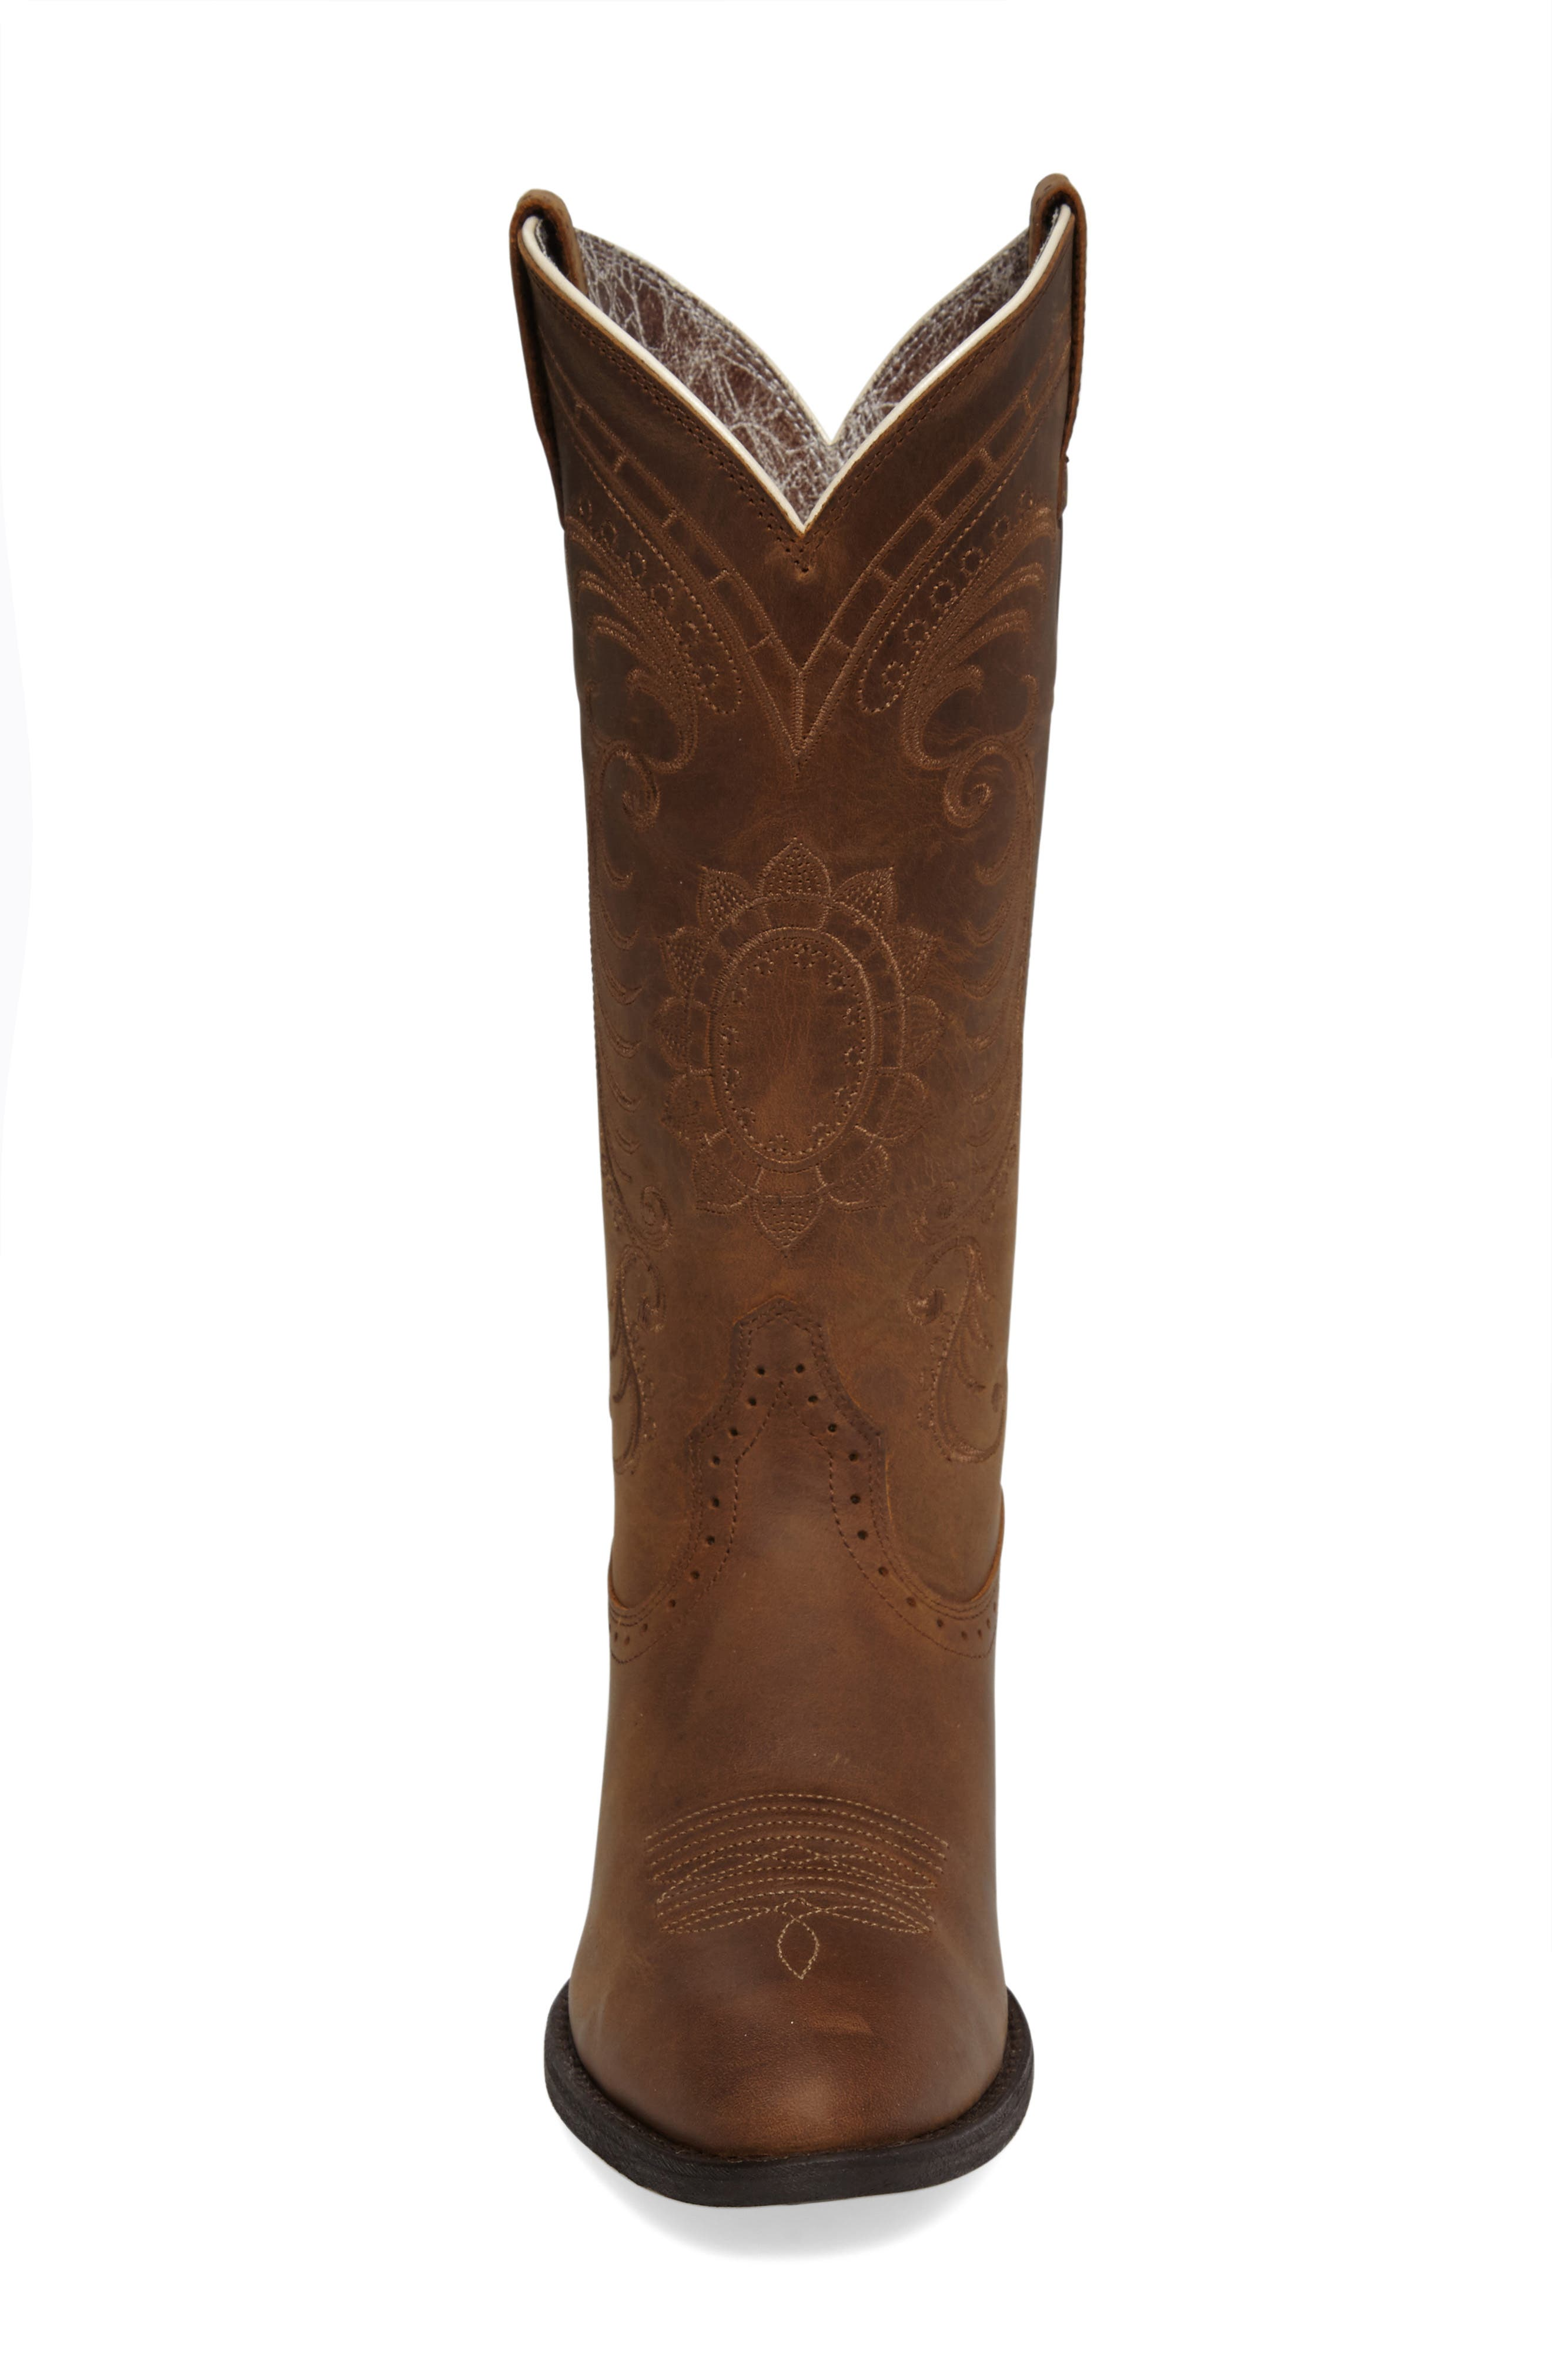 New West Collection - Magnolia Western Boot,                             Alternate thumbnail 3, color,                             DISTRESSED BROWN LEATHER